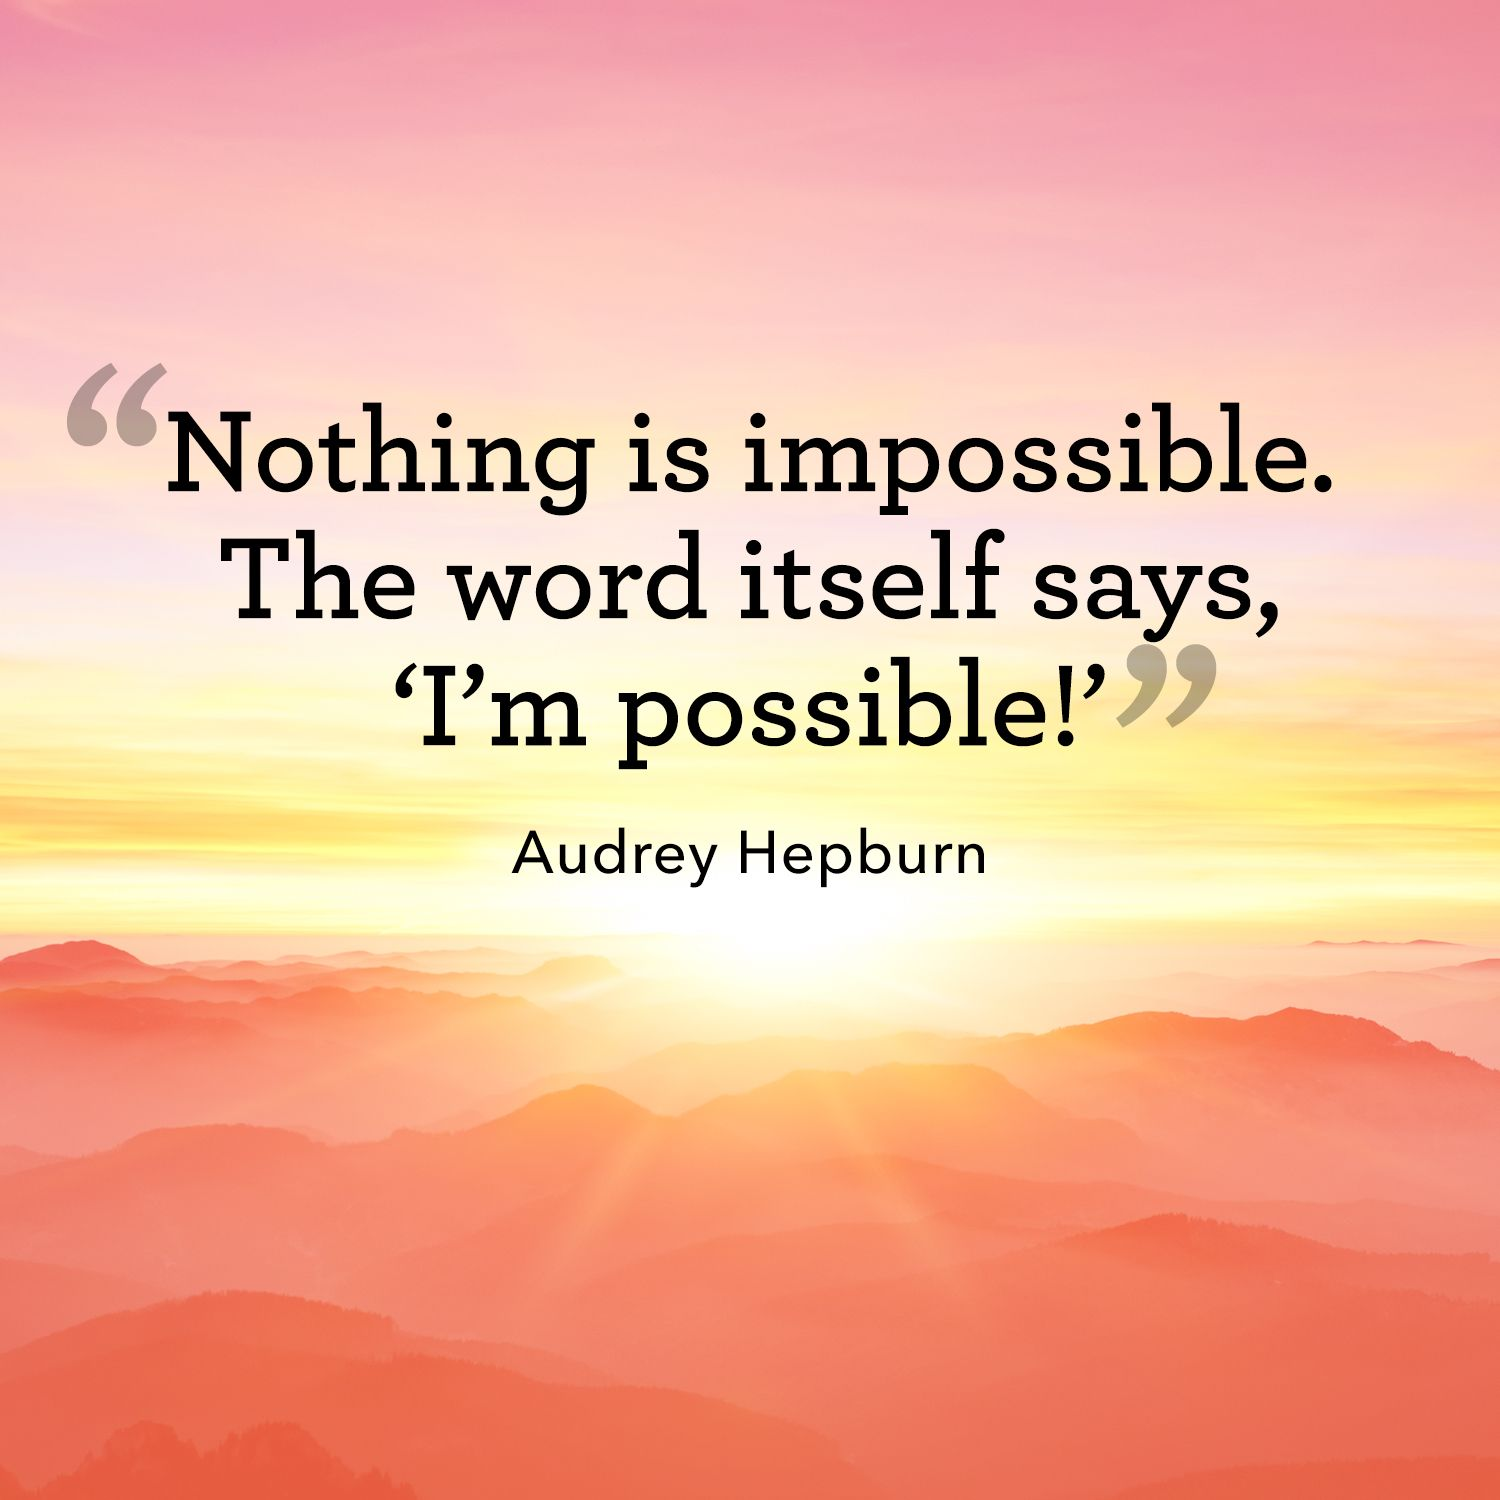 Inspirational Quotes About Positive: Inspirational Quotes To Ring In The New Year